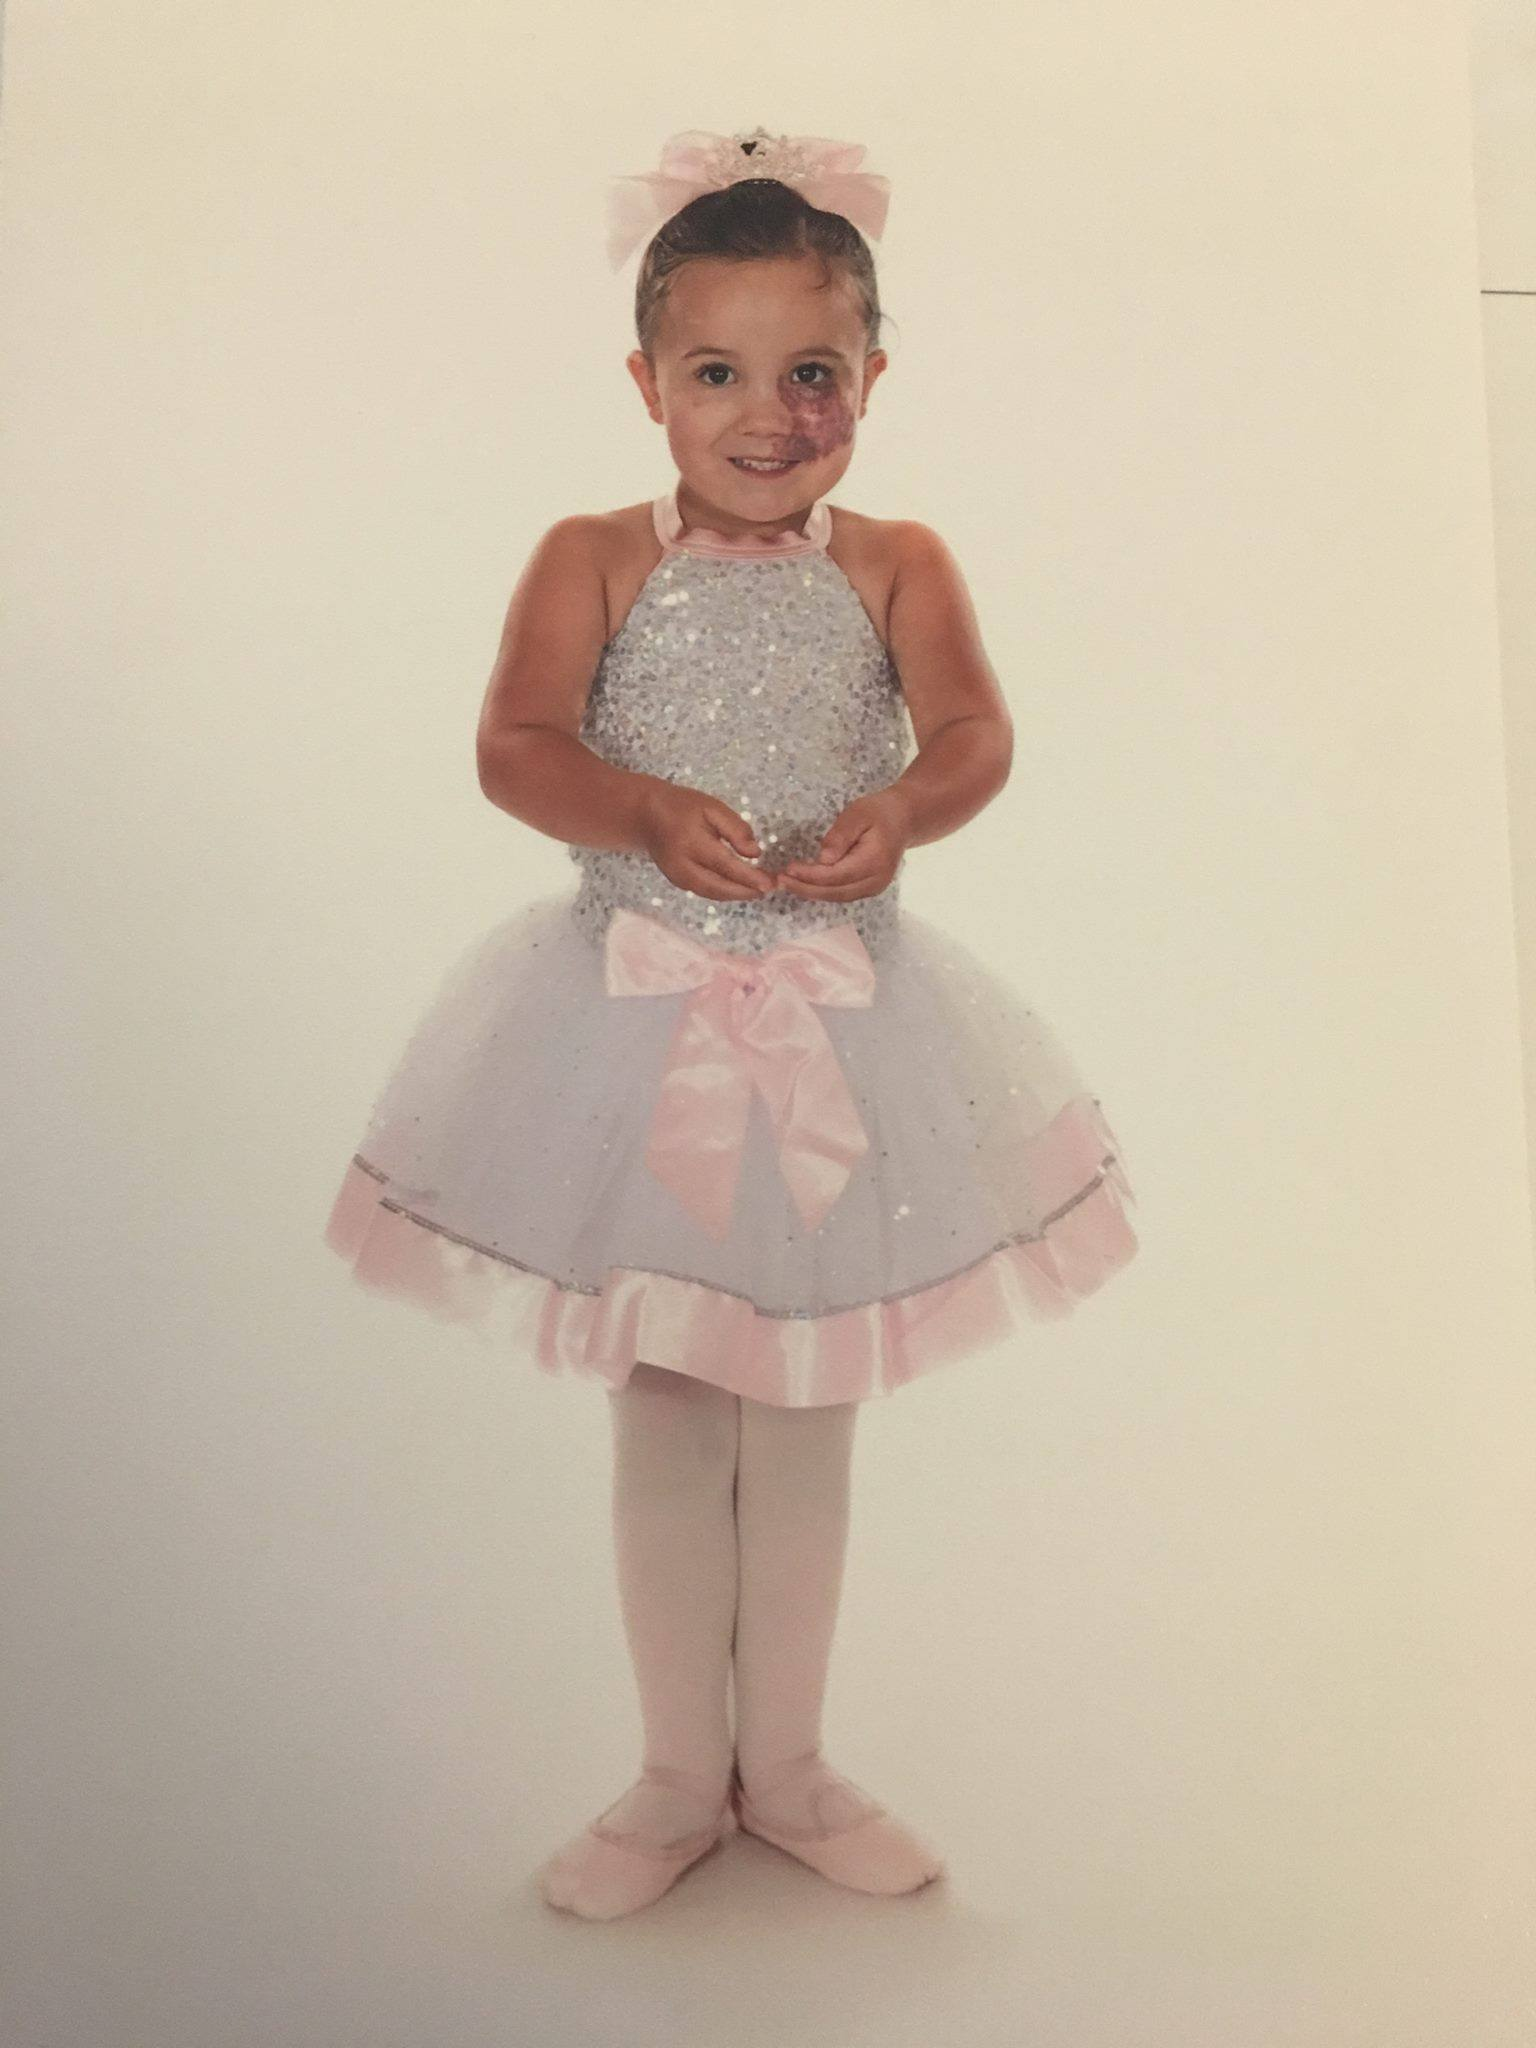 A little girl in her ballerina outfit, around the age of 4, with a birthmark on her cheek.